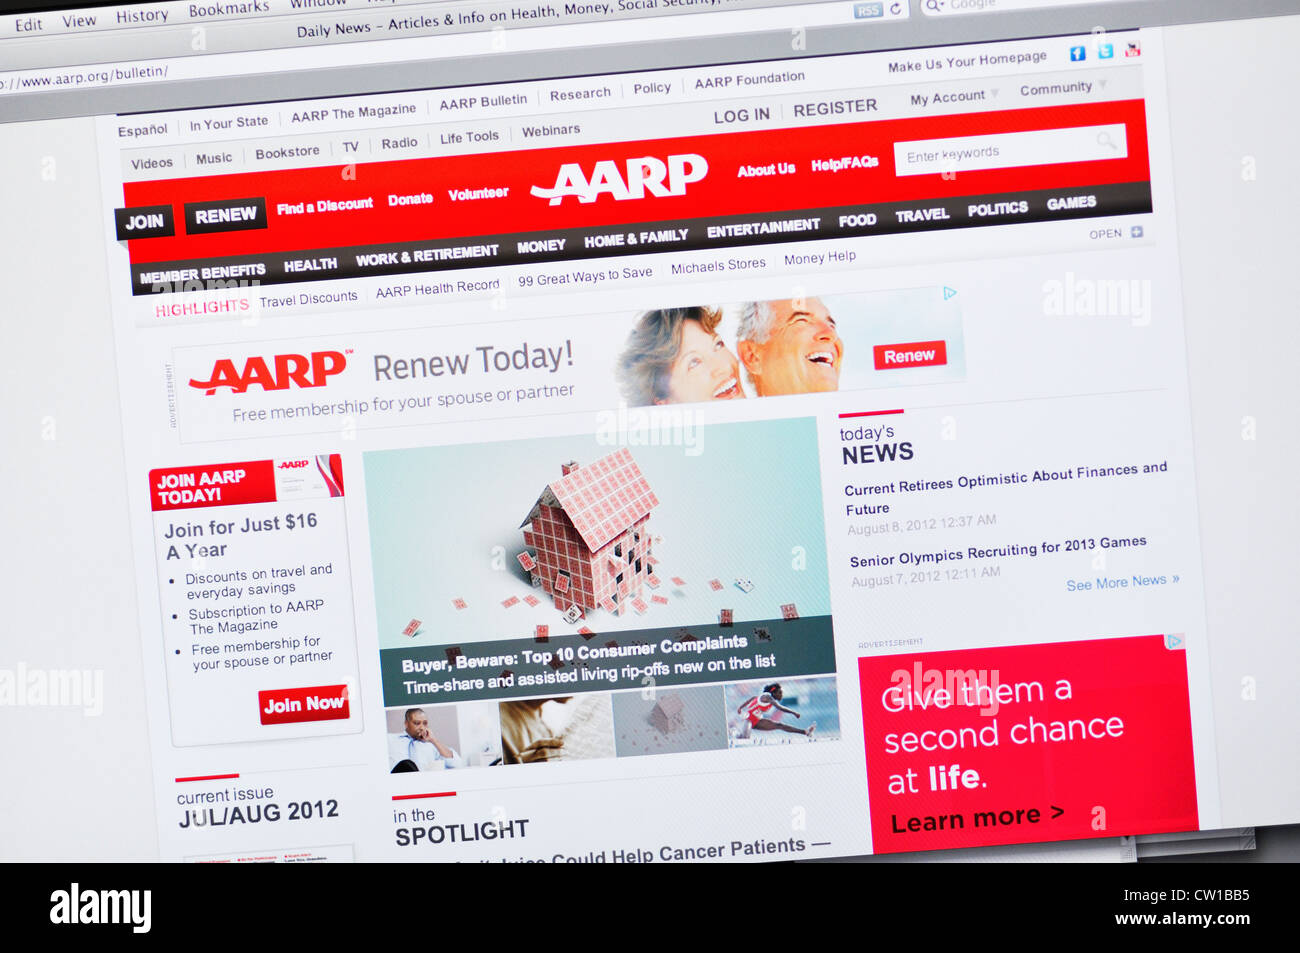 AARP website - American Association of Retired Persons, US non-governmental organization and interest group - Stock Image